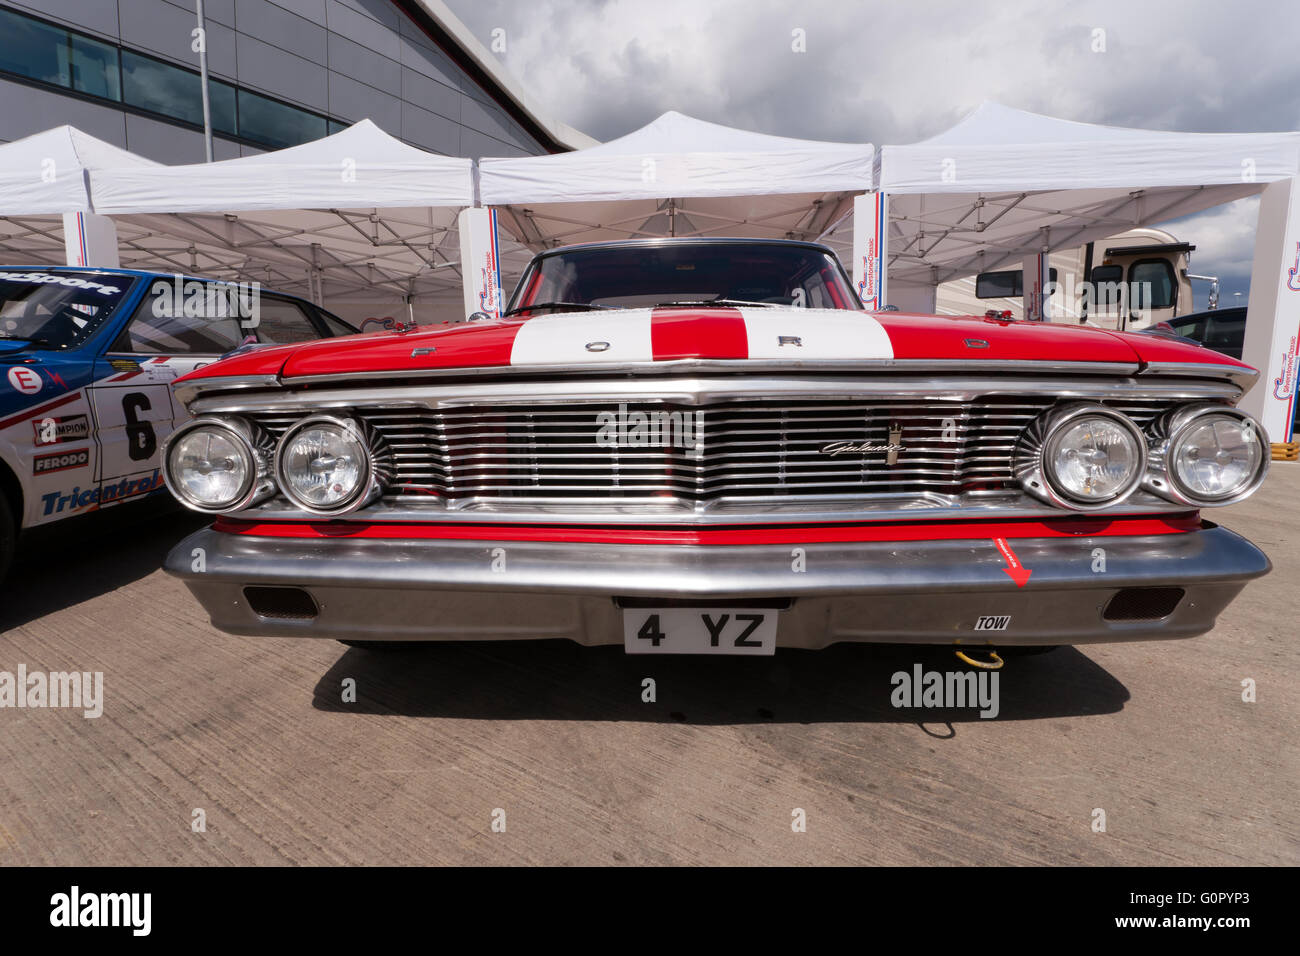 Wide-angle front end view of a vintage Ford Galaxy 500 American ...